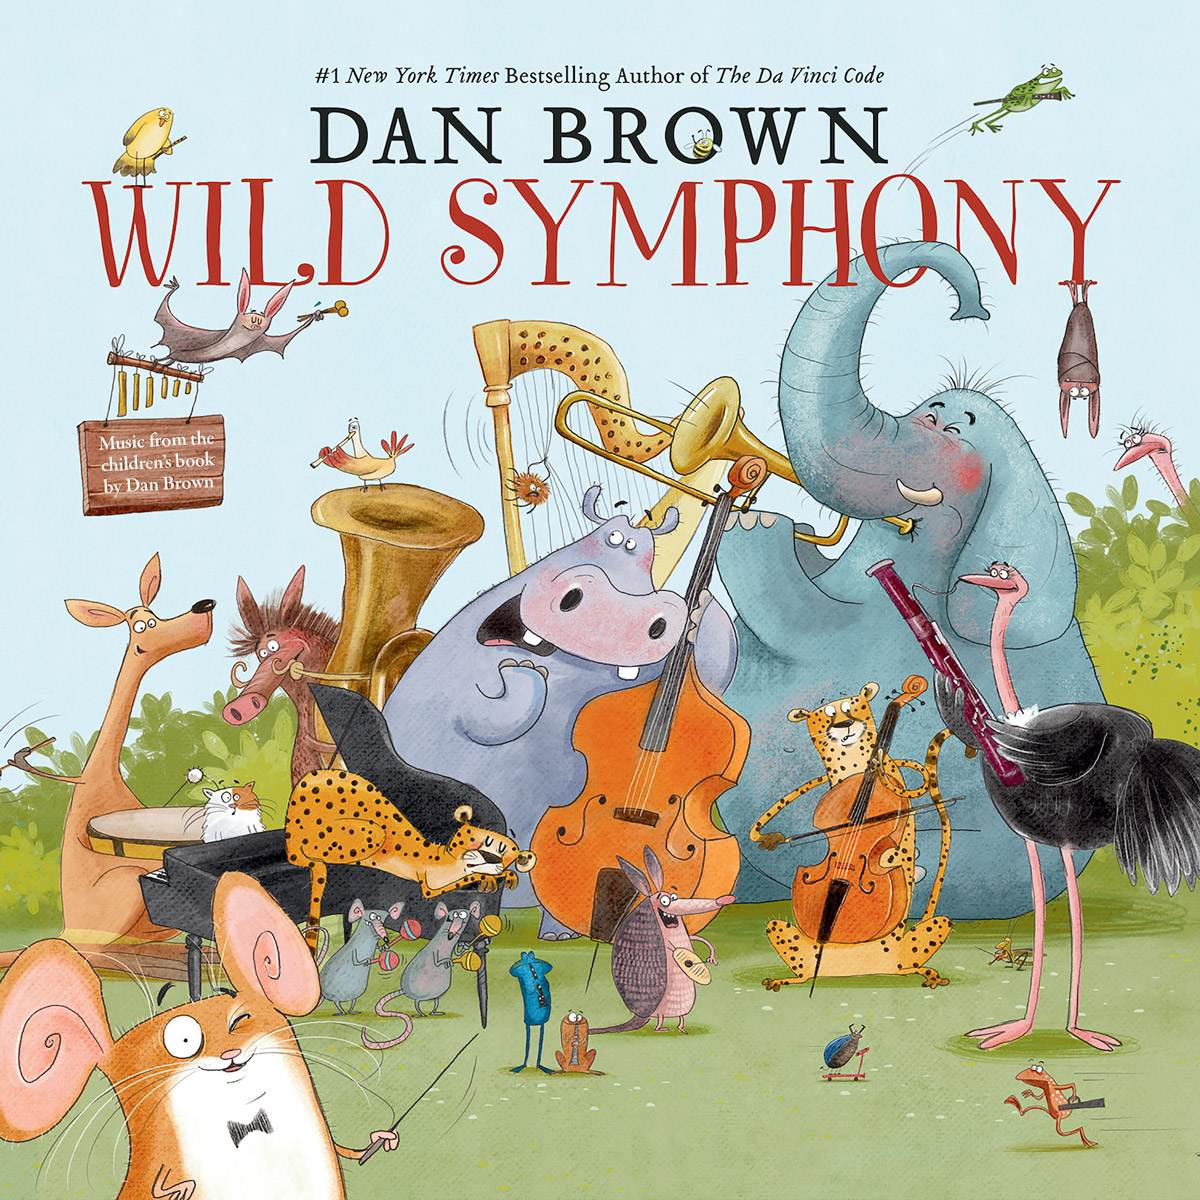 Wild Symphony - Dan Brown - Album Cover